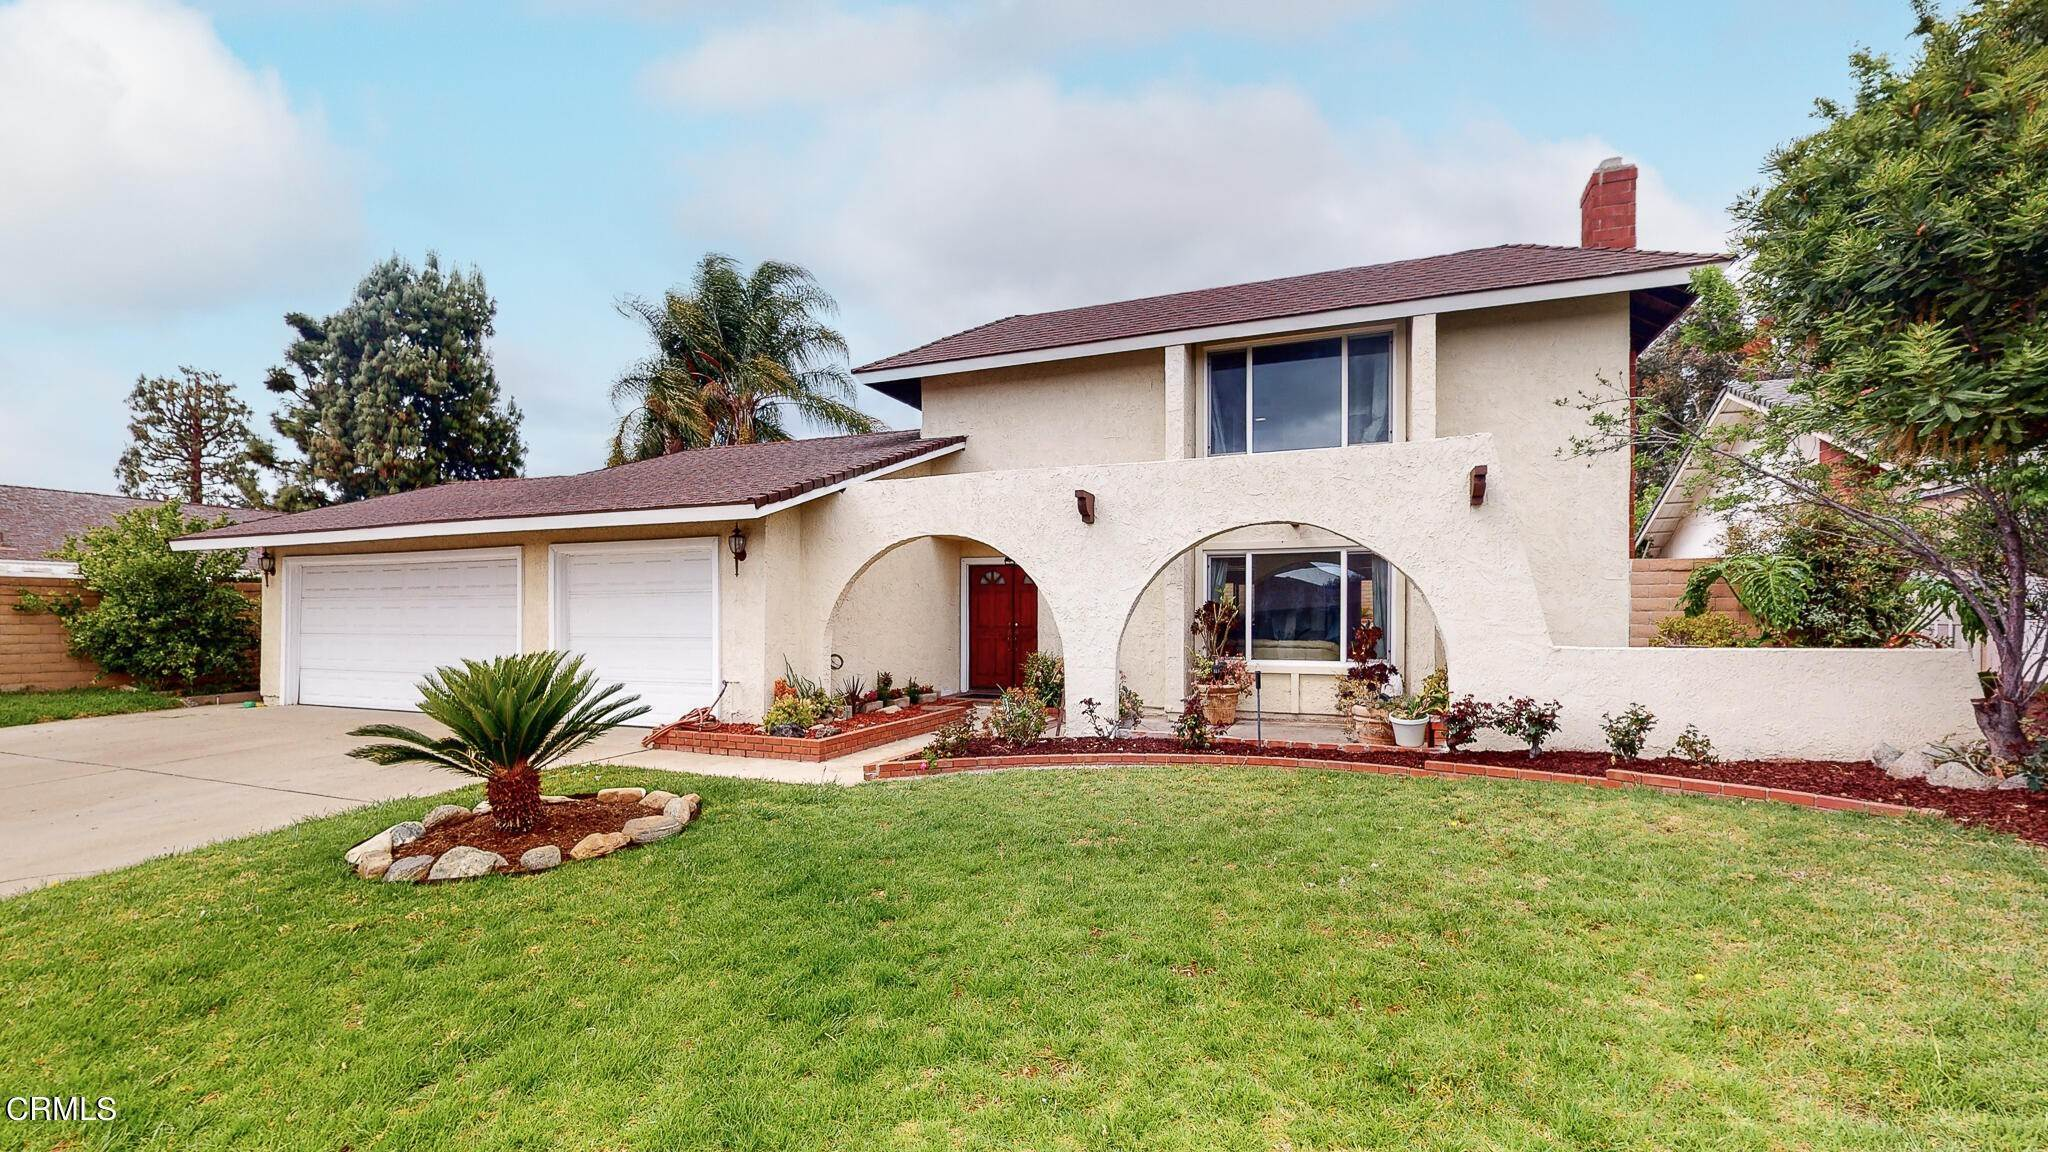 2. Single Family Homes for Sale at 1039 Alondra Circle La Verne, California 91750 United States